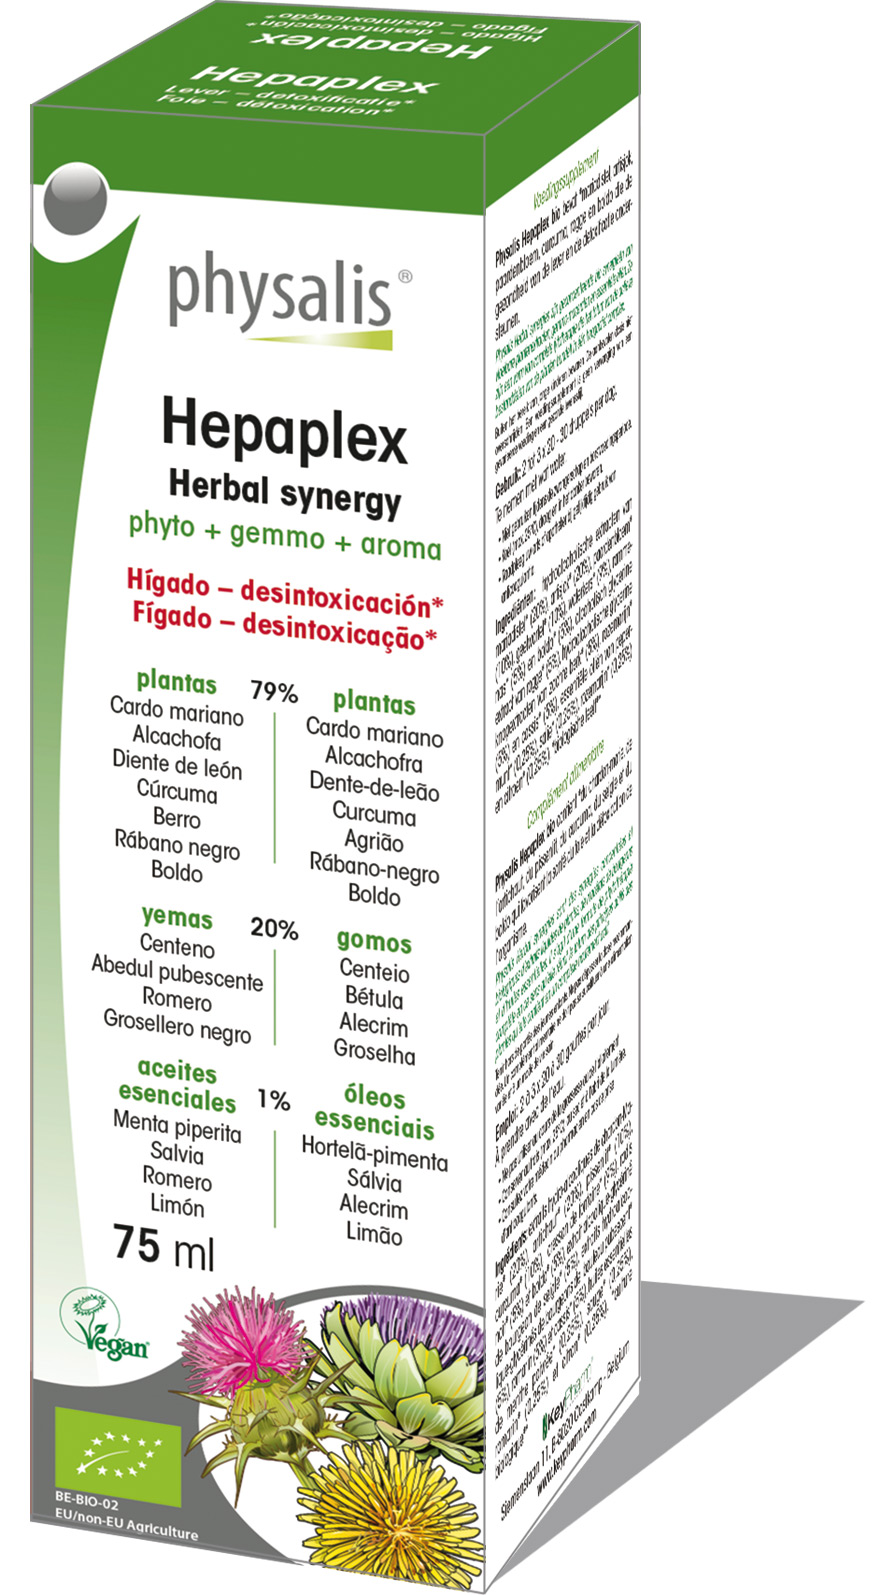 Hepaplex - Herbal synergy